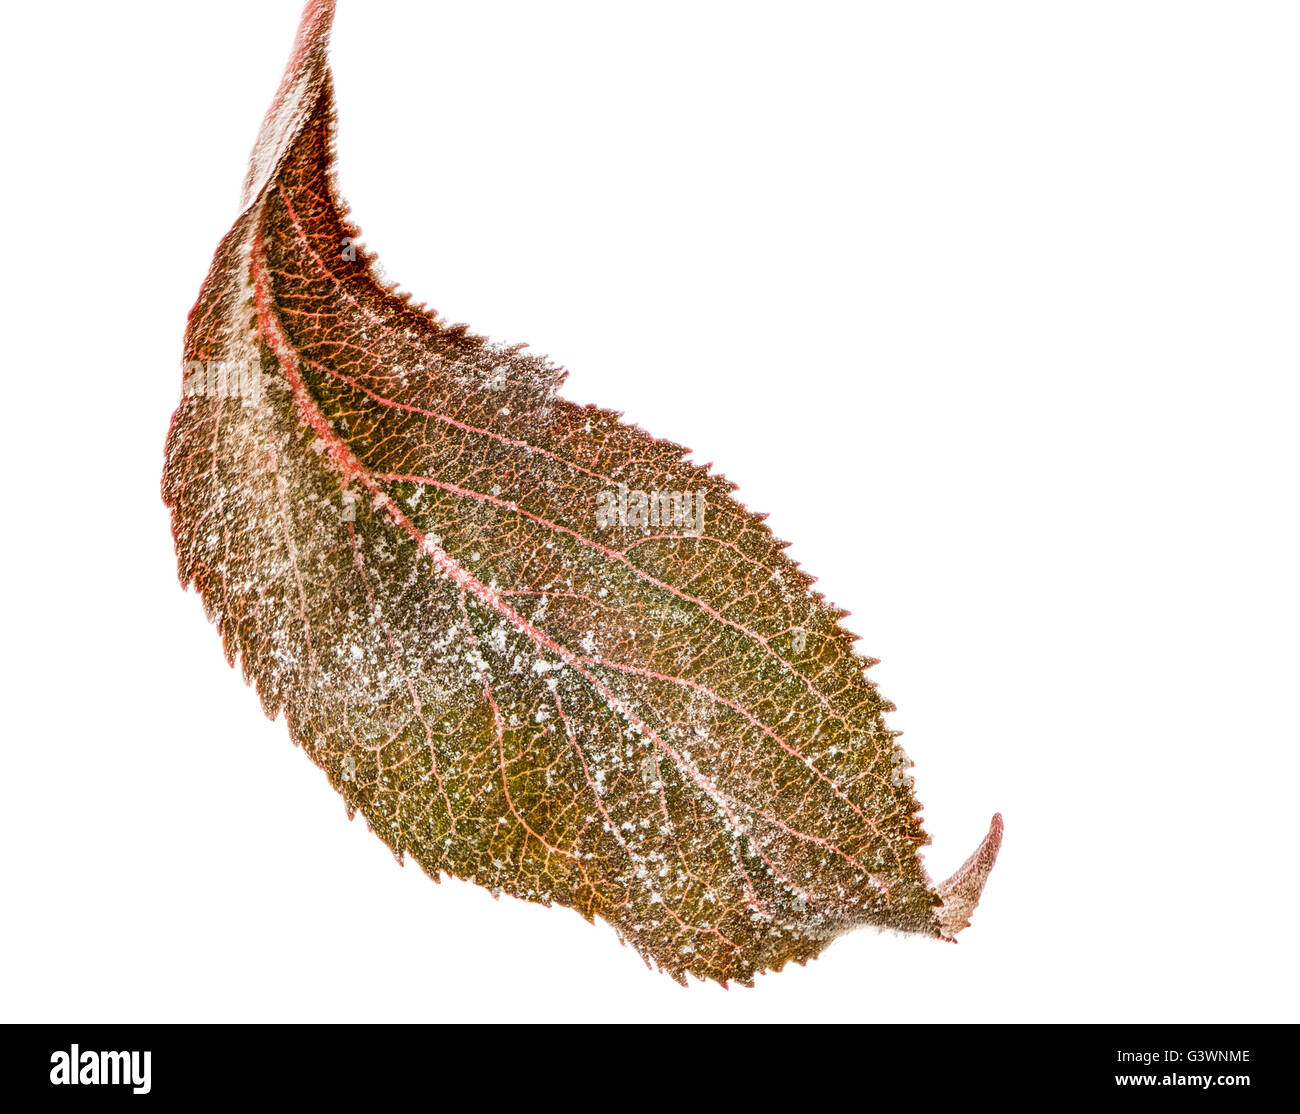 Isolated leaf of an apple tree with powdery mildew (Podosphaera leucotricha), a fungal disease - Stock Image